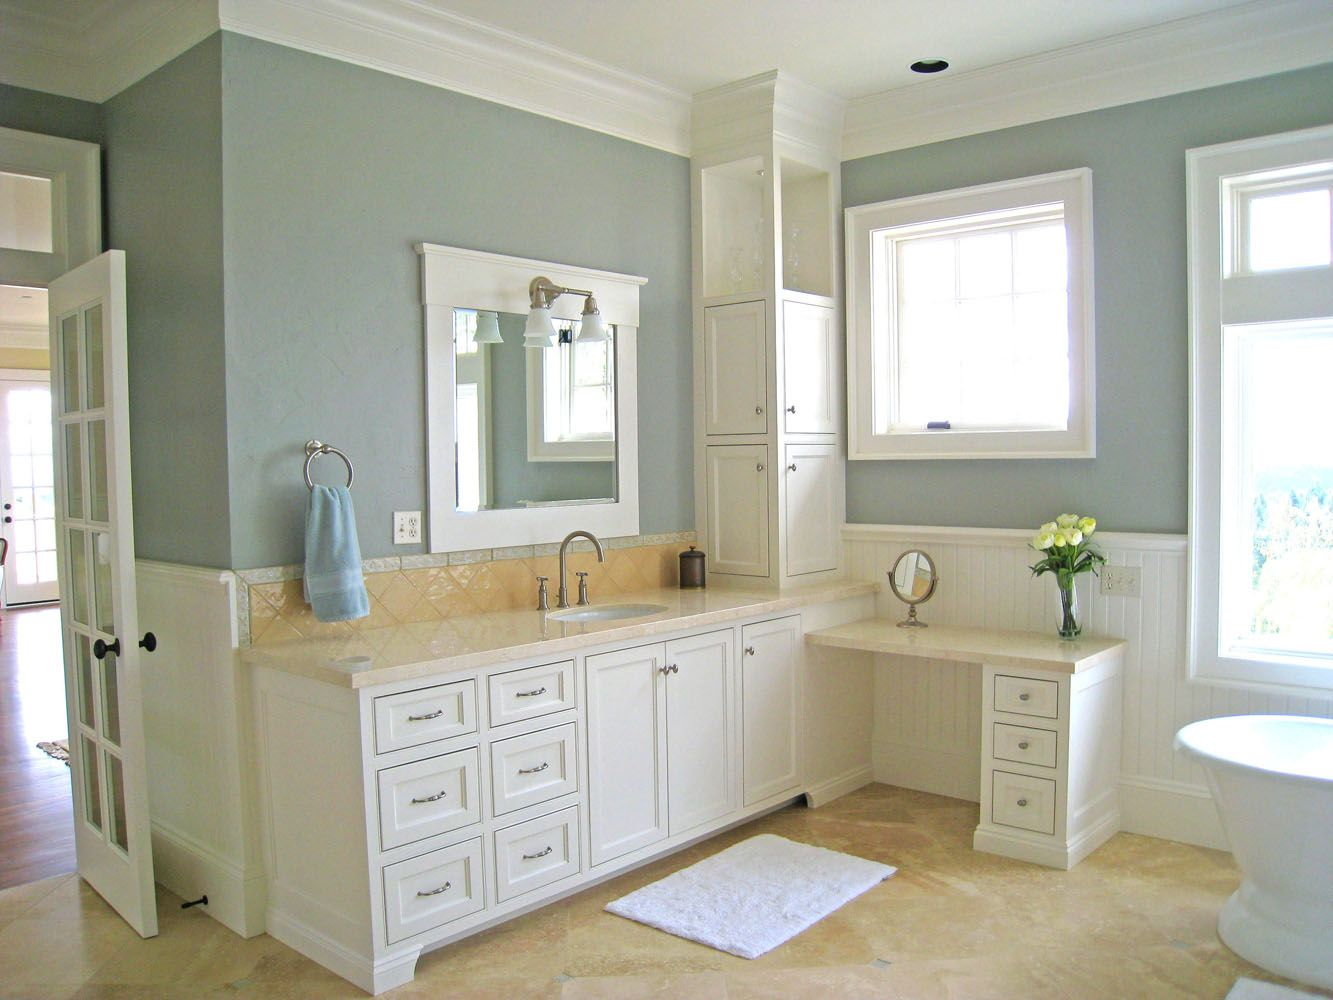 Traditional white bathroom ideas - Light And Airy Bathroom Painting Ideas Ideas Interactive Bathroom Design Ideas With White